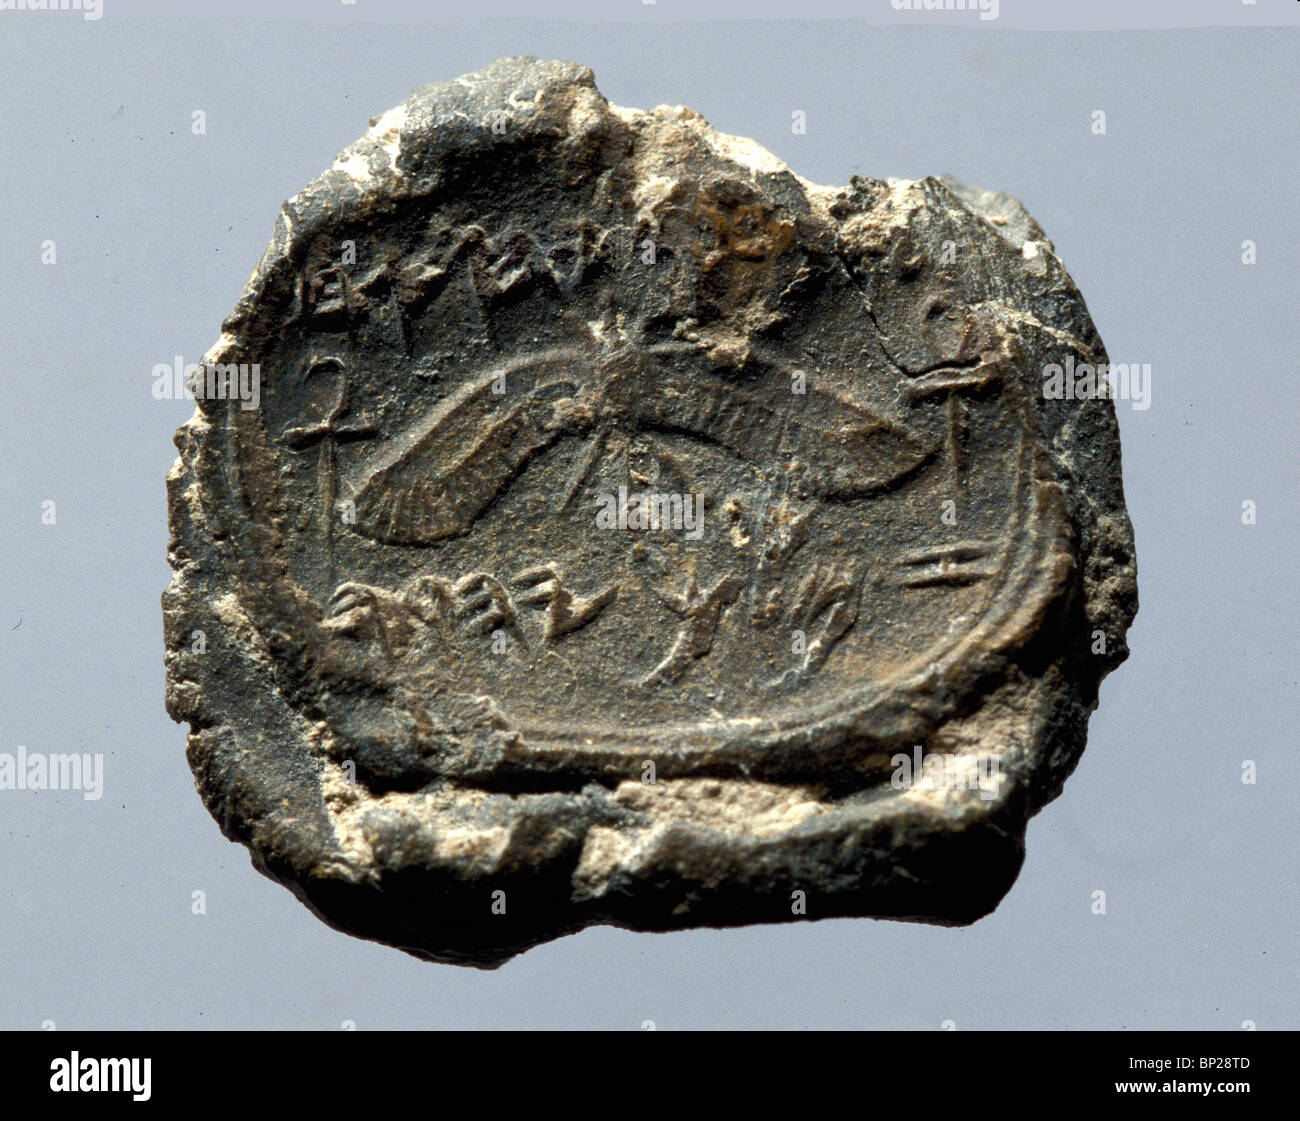 2346. BULAE (CLAY SEAL) INSCRIBED IN ANCIENT HEBREW; 'TO HEZEKIAH (SON OF) AHAZ KING (OF) JUDEA' DATING - Stock Image